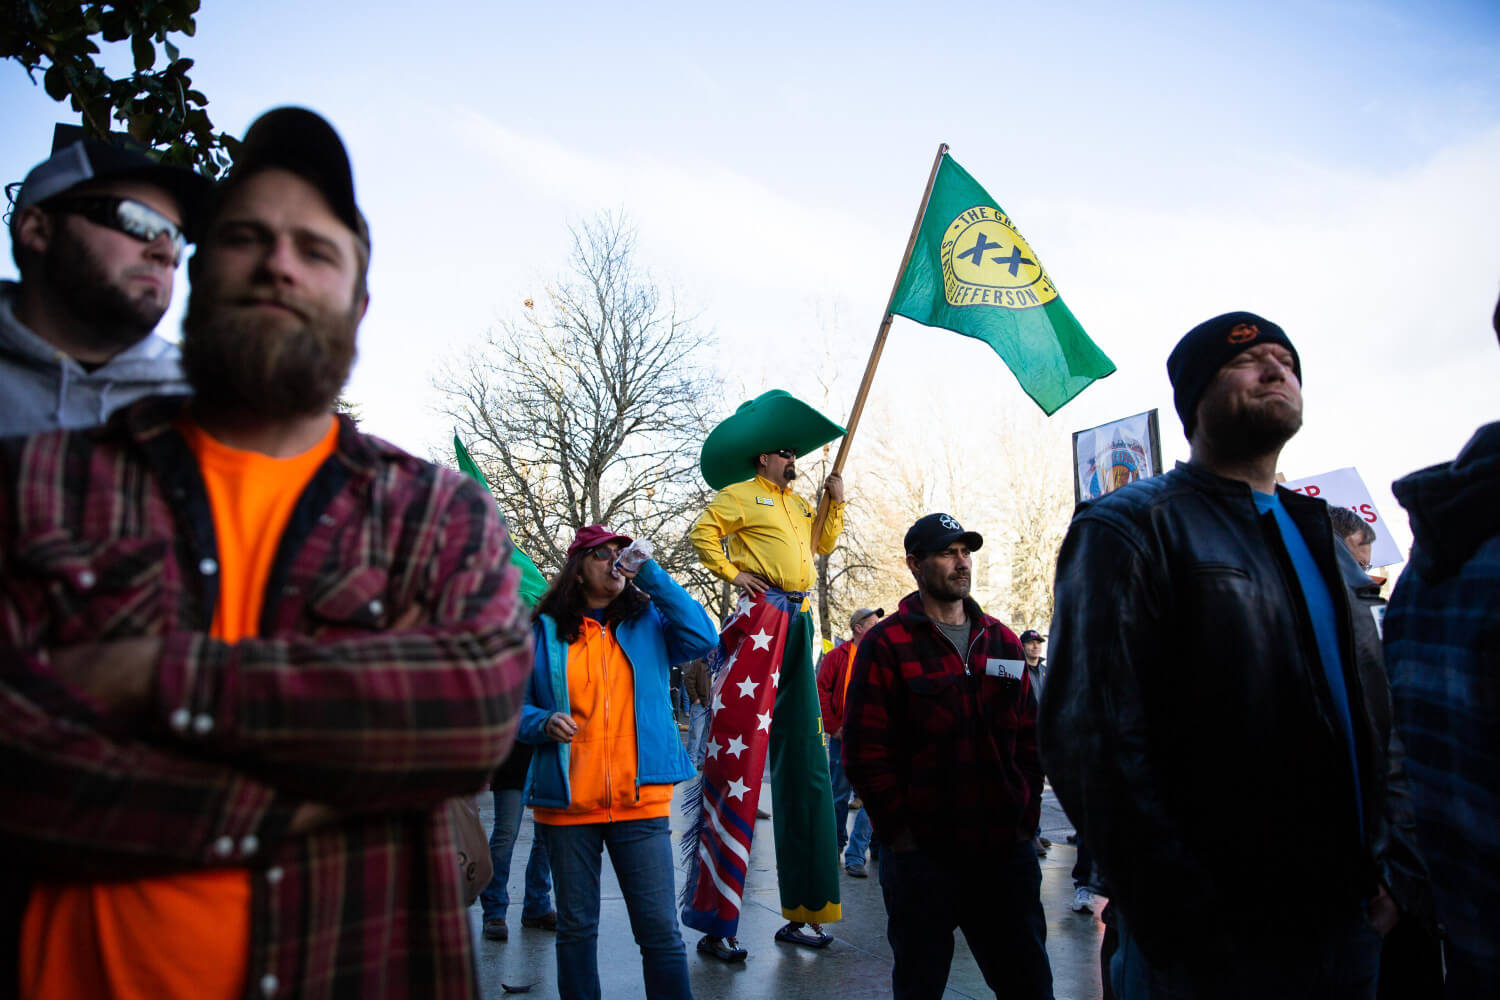 People stand in a loose crowd, and in the middle, there is a man in stilts dressed in yellow, red and green clothing with a large green hat, holding a flag.